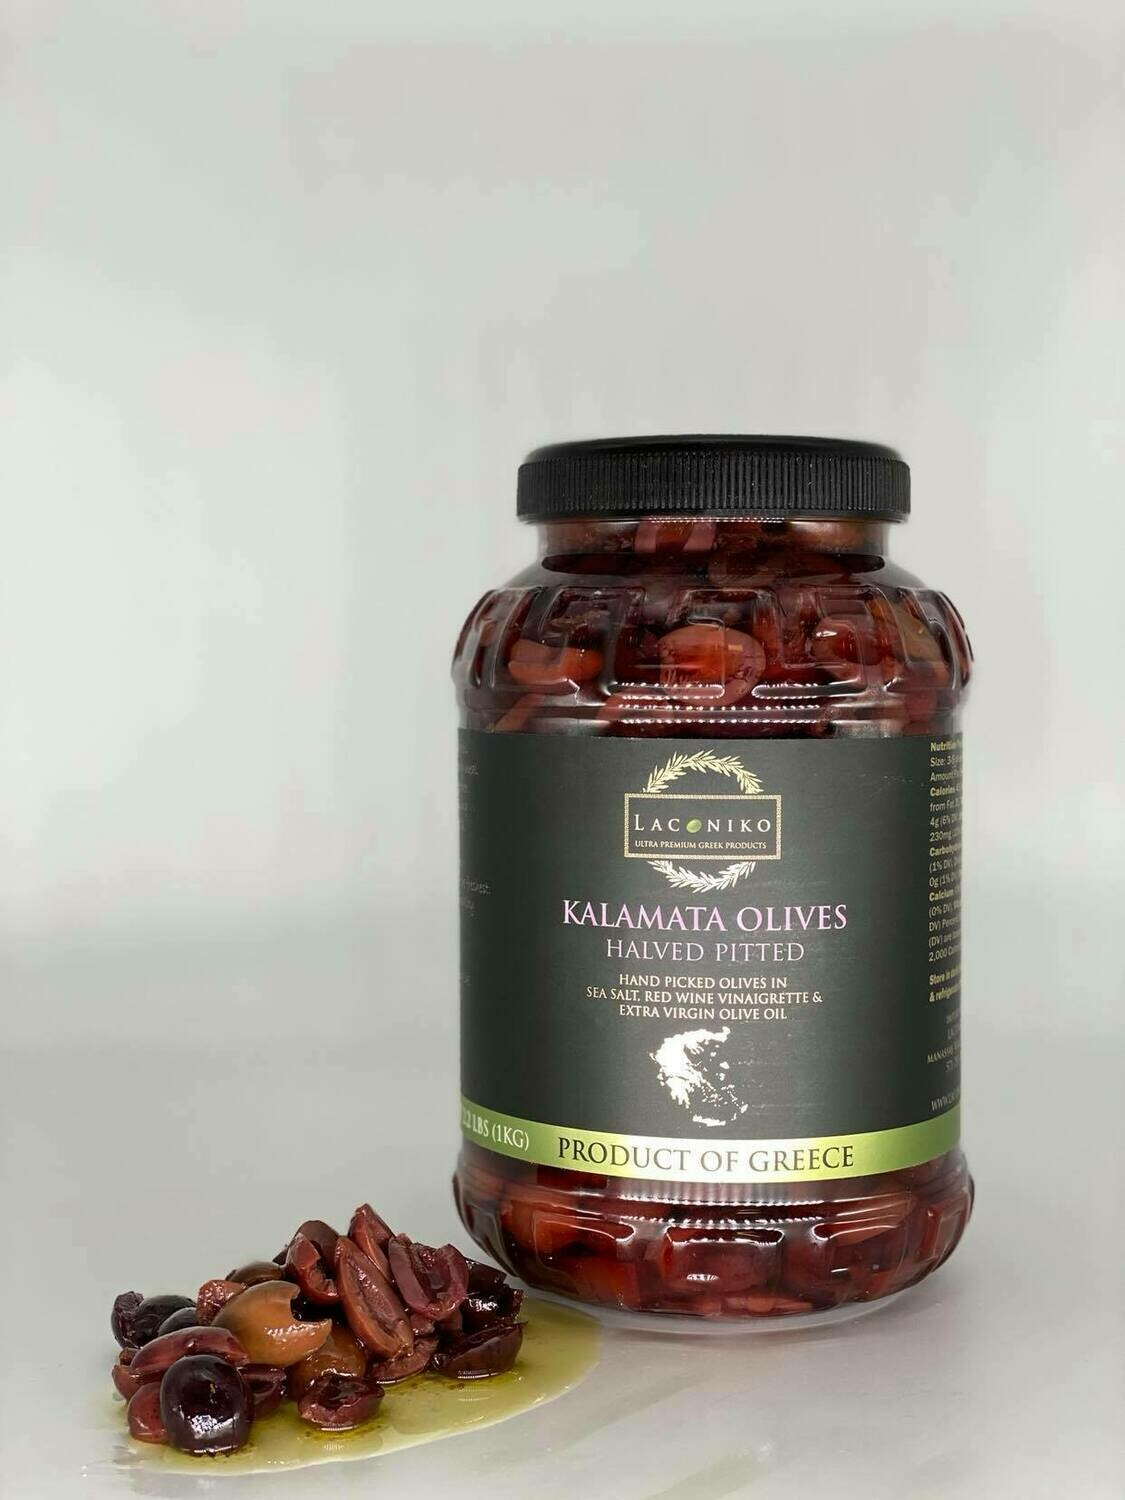 Halved-Pitted Kalamata Olives